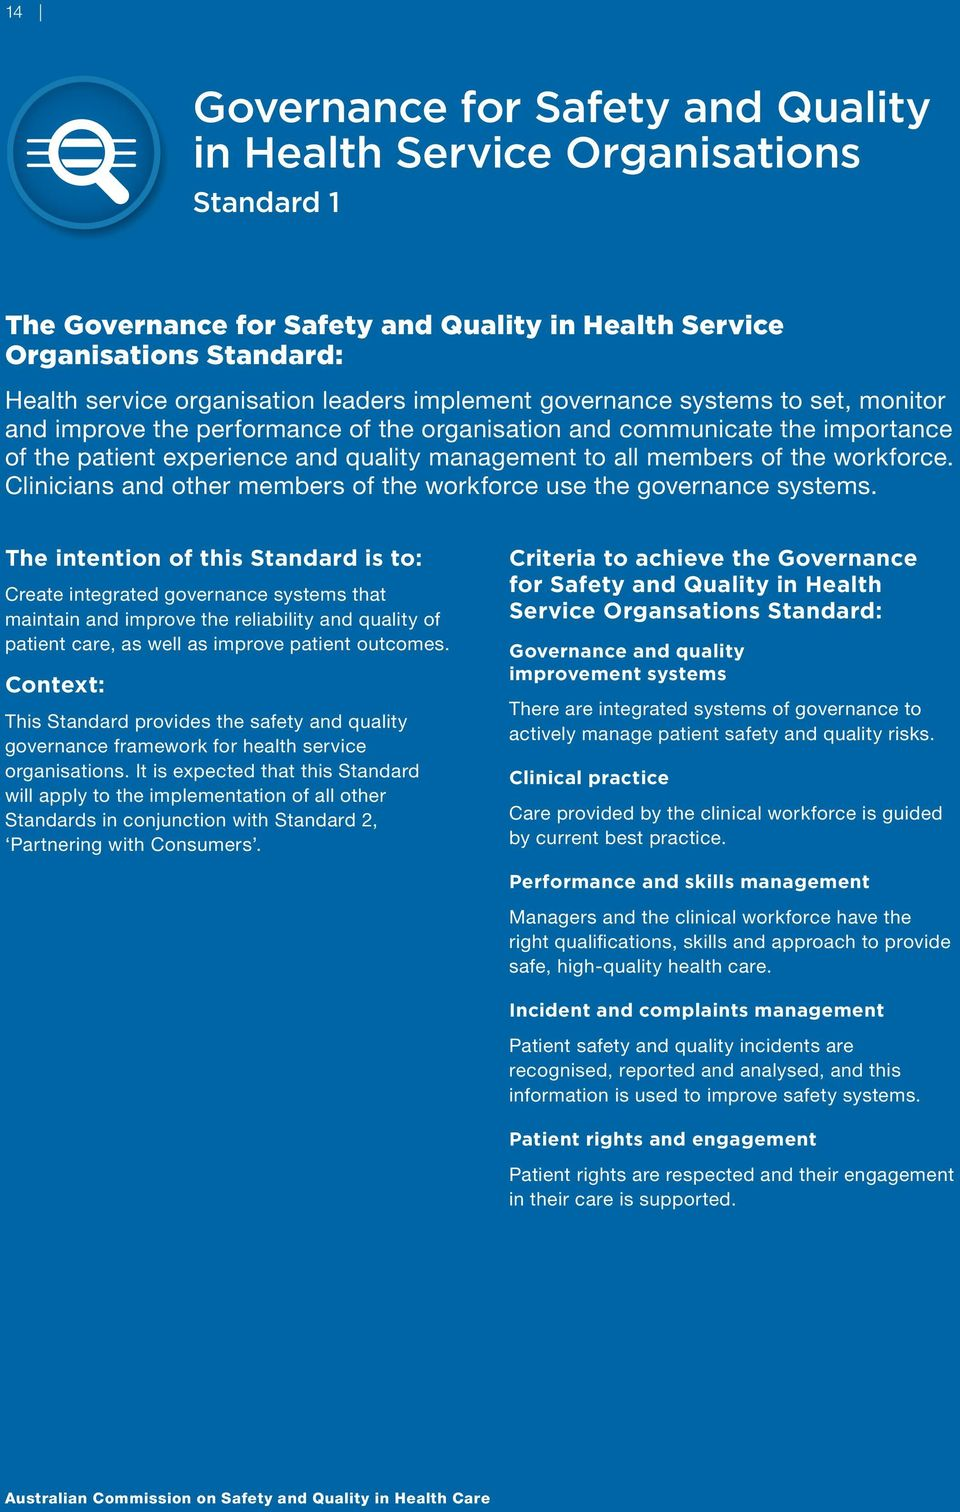 workforce. Clinicians and other members of the workforce use the governance systems.